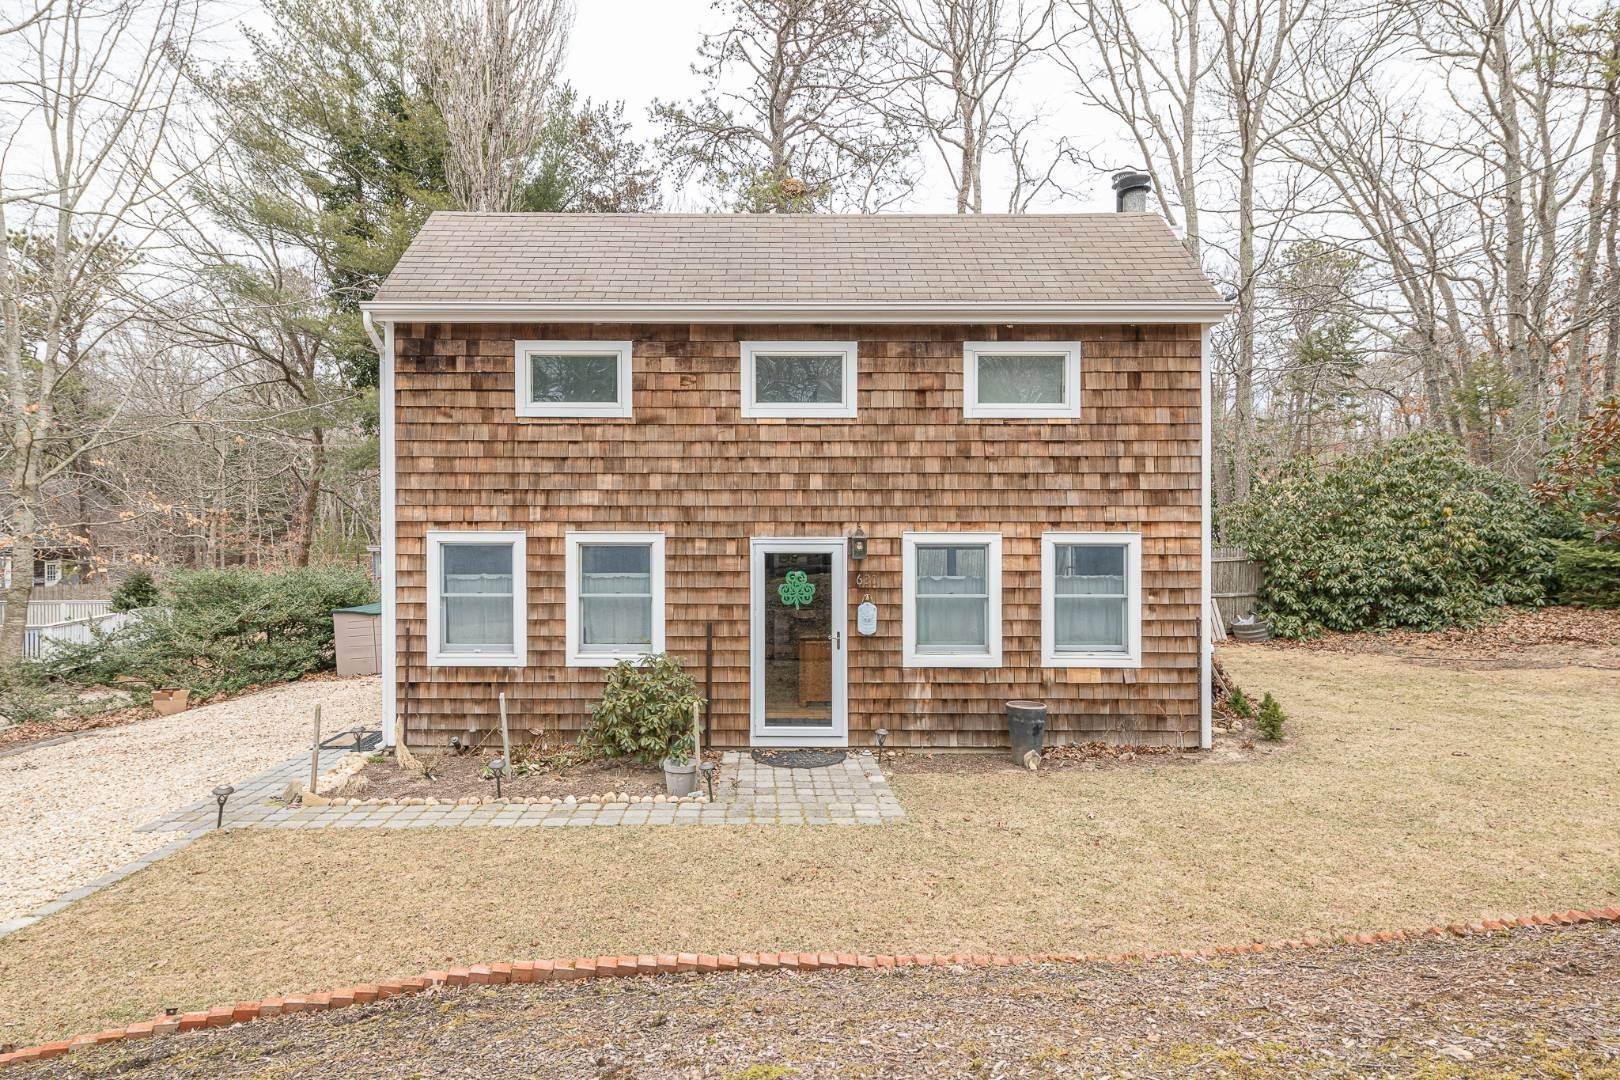 Single Family Home for Sale at Charming Saltbox In The Northwest Woods Of East Hampton 620 Stephen Hands Path, East Hampton, NY 11937